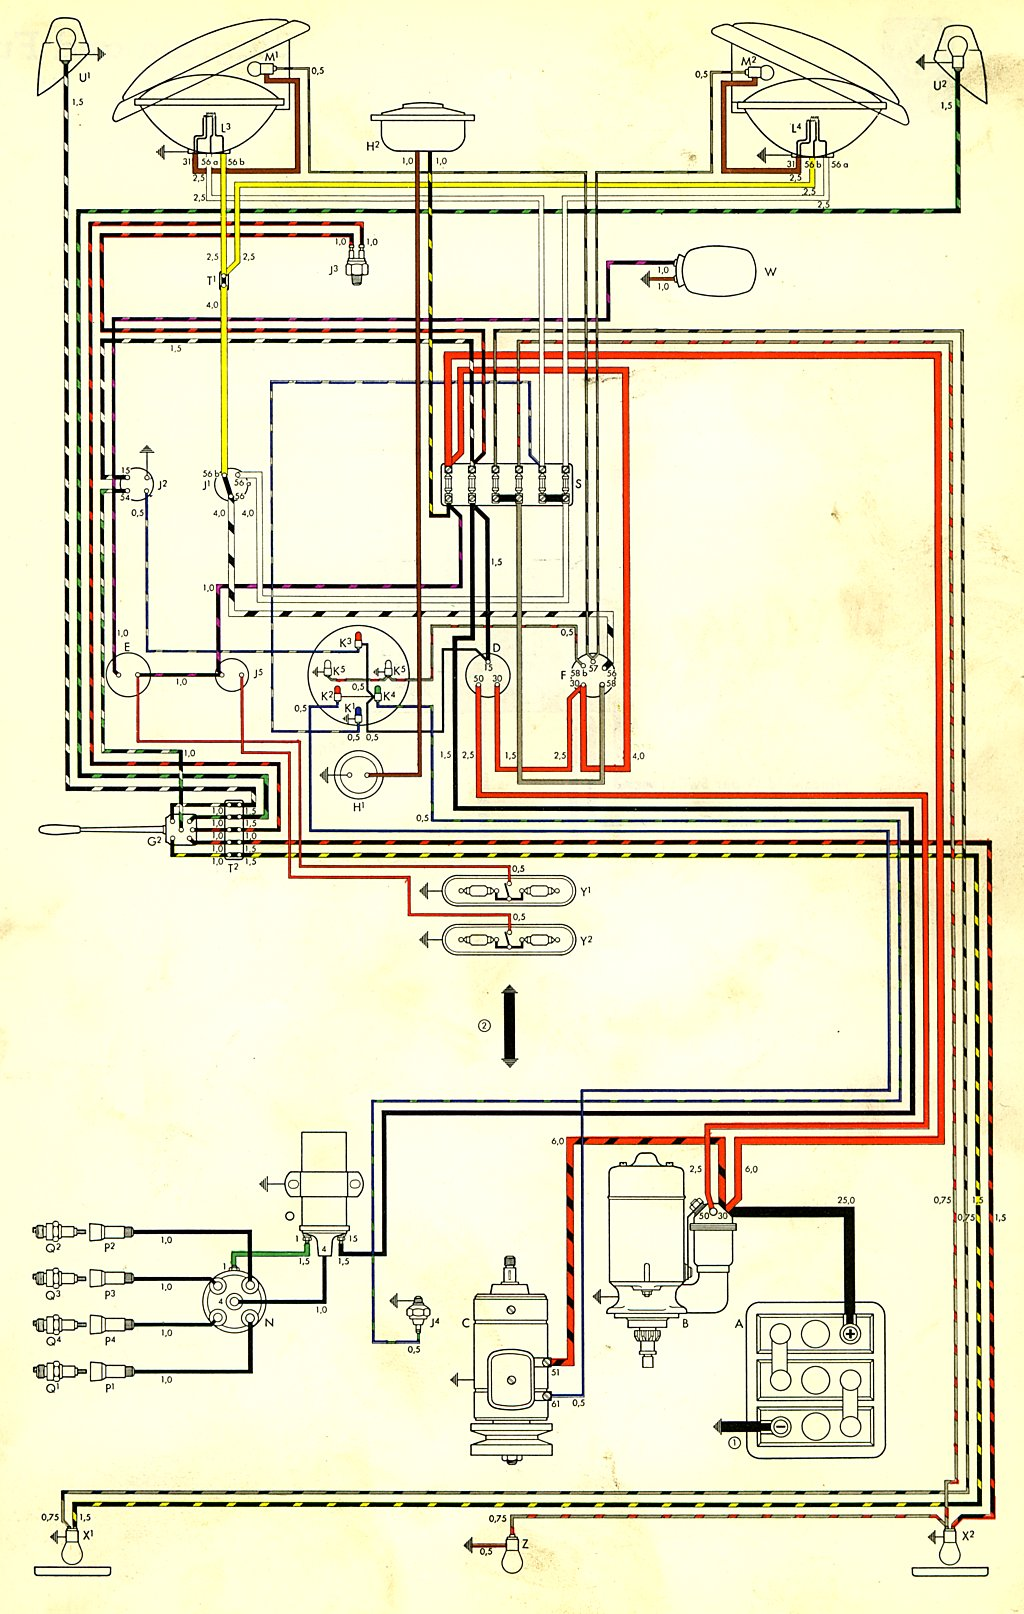 thesamba com type 2 wiring diagrams1982 Vanagon Wiring Diagram #6